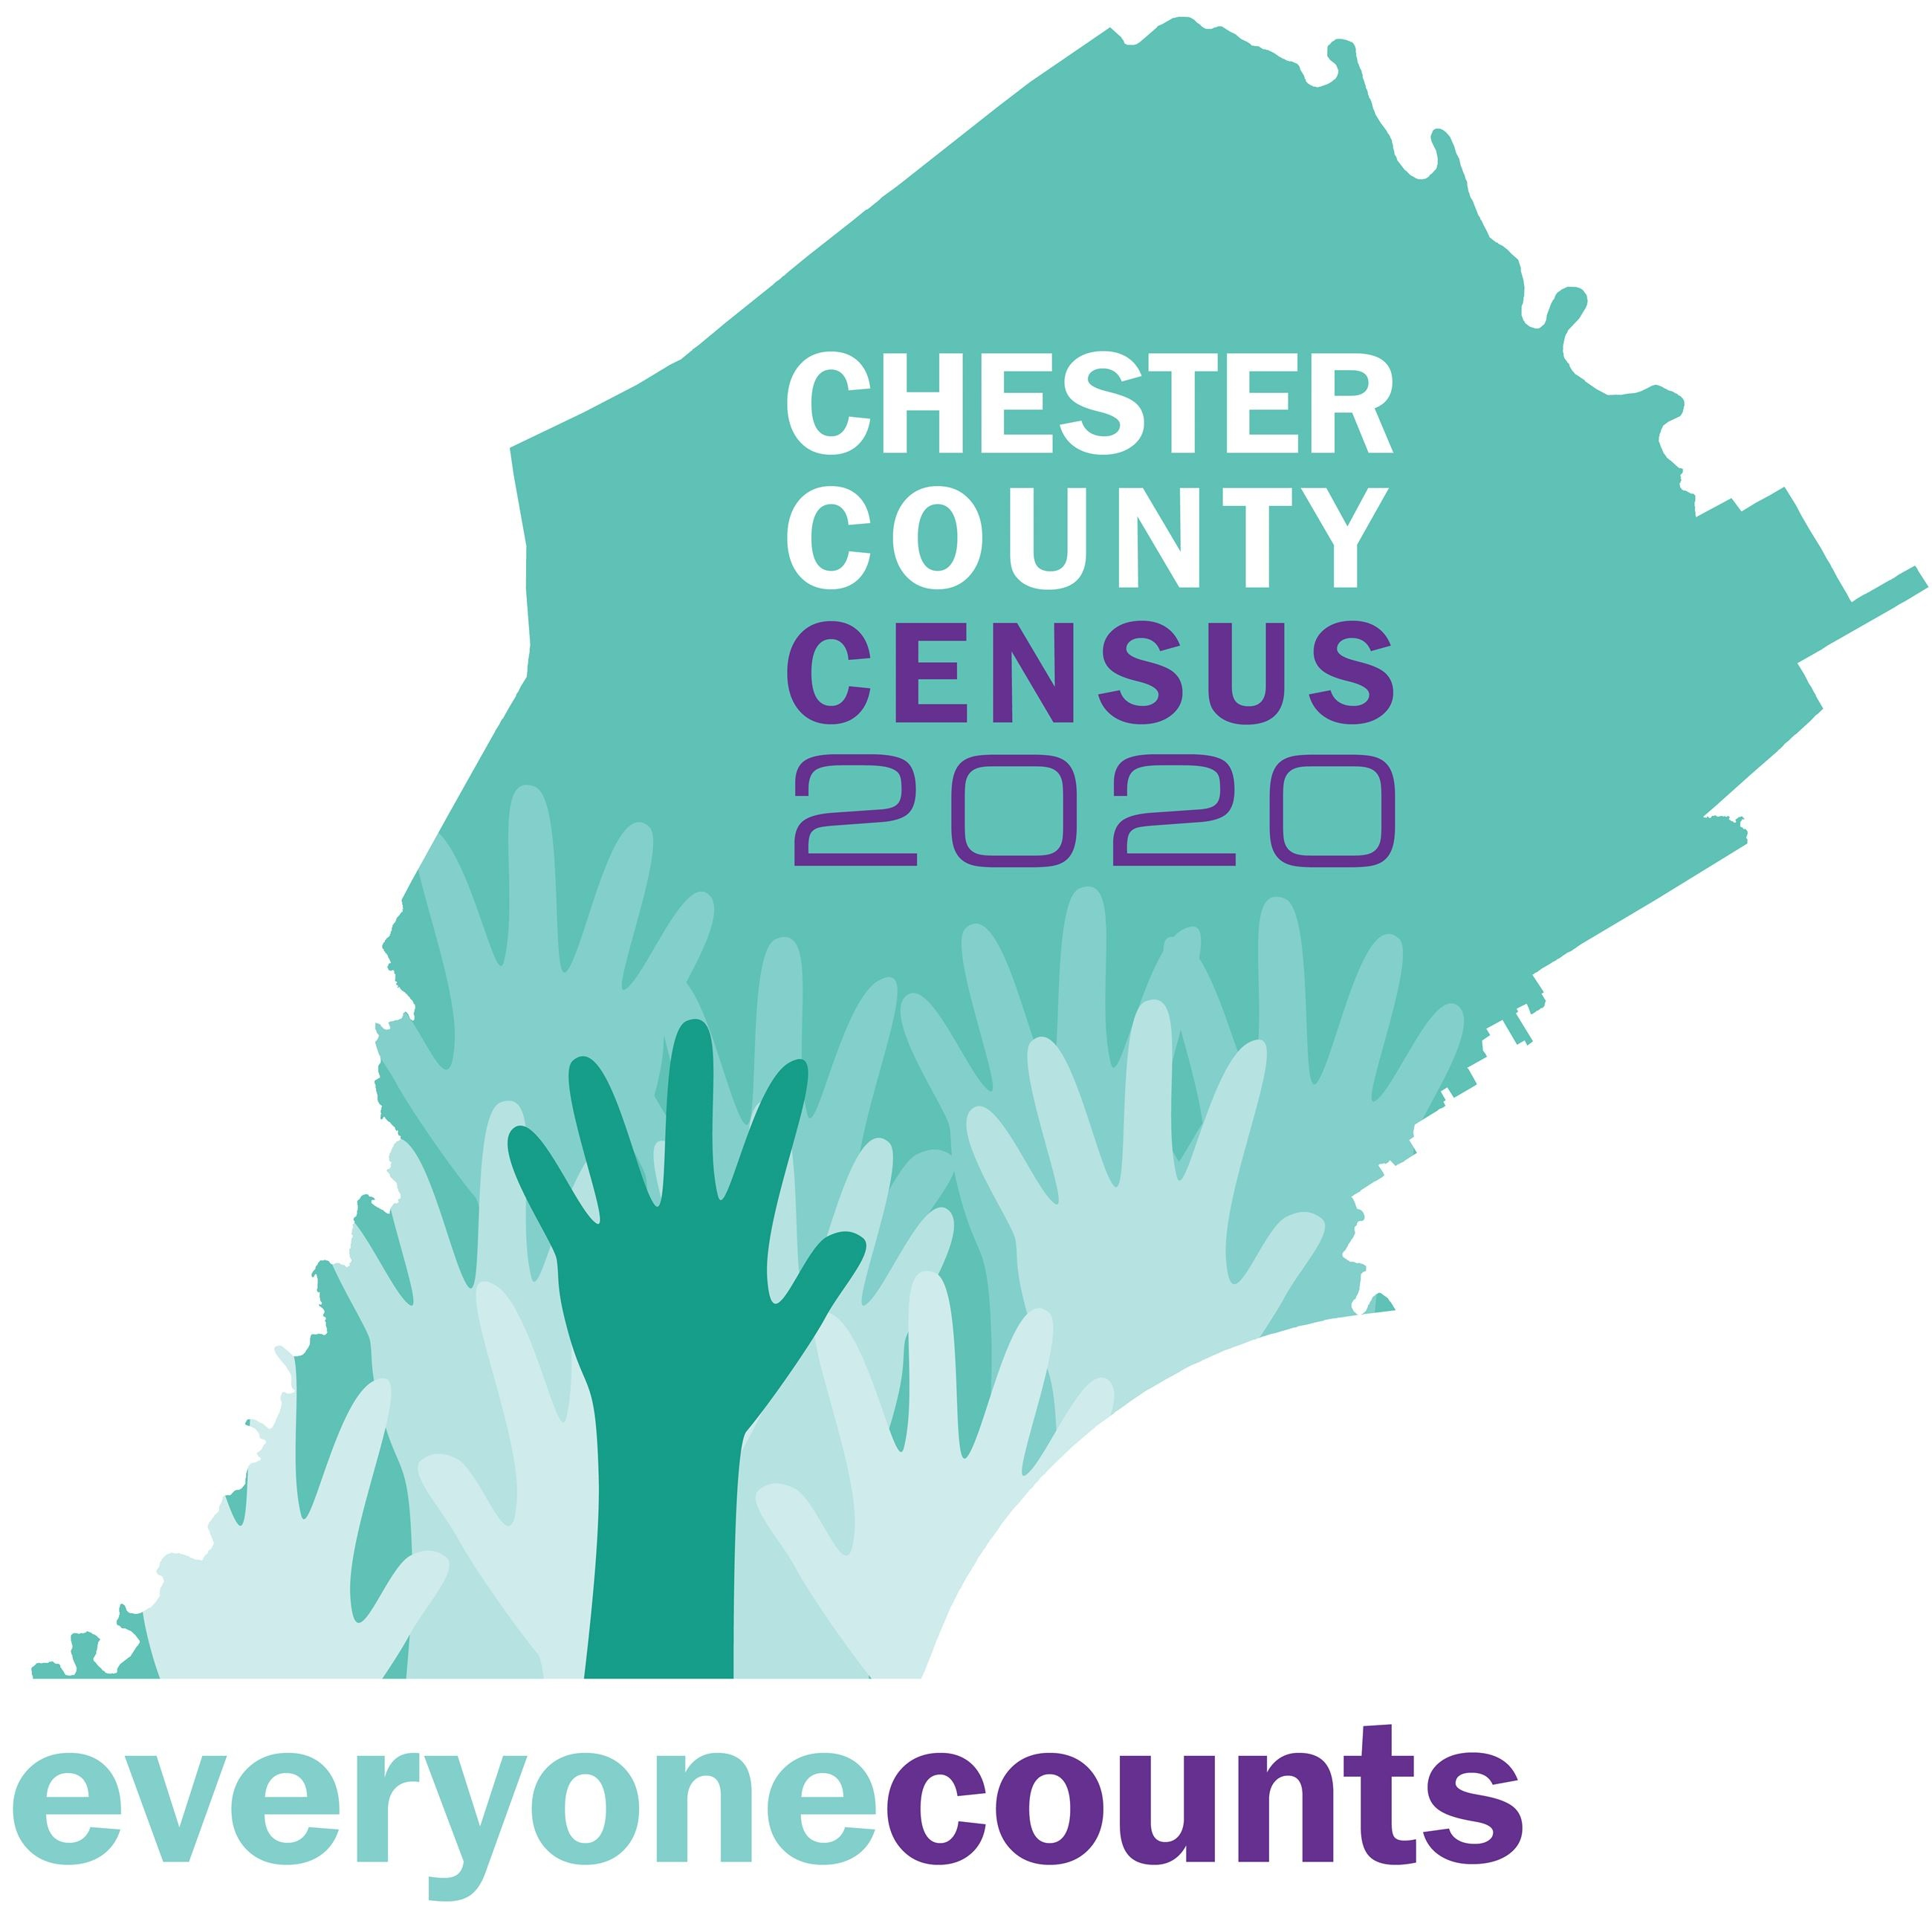 Chester County 2020 Census